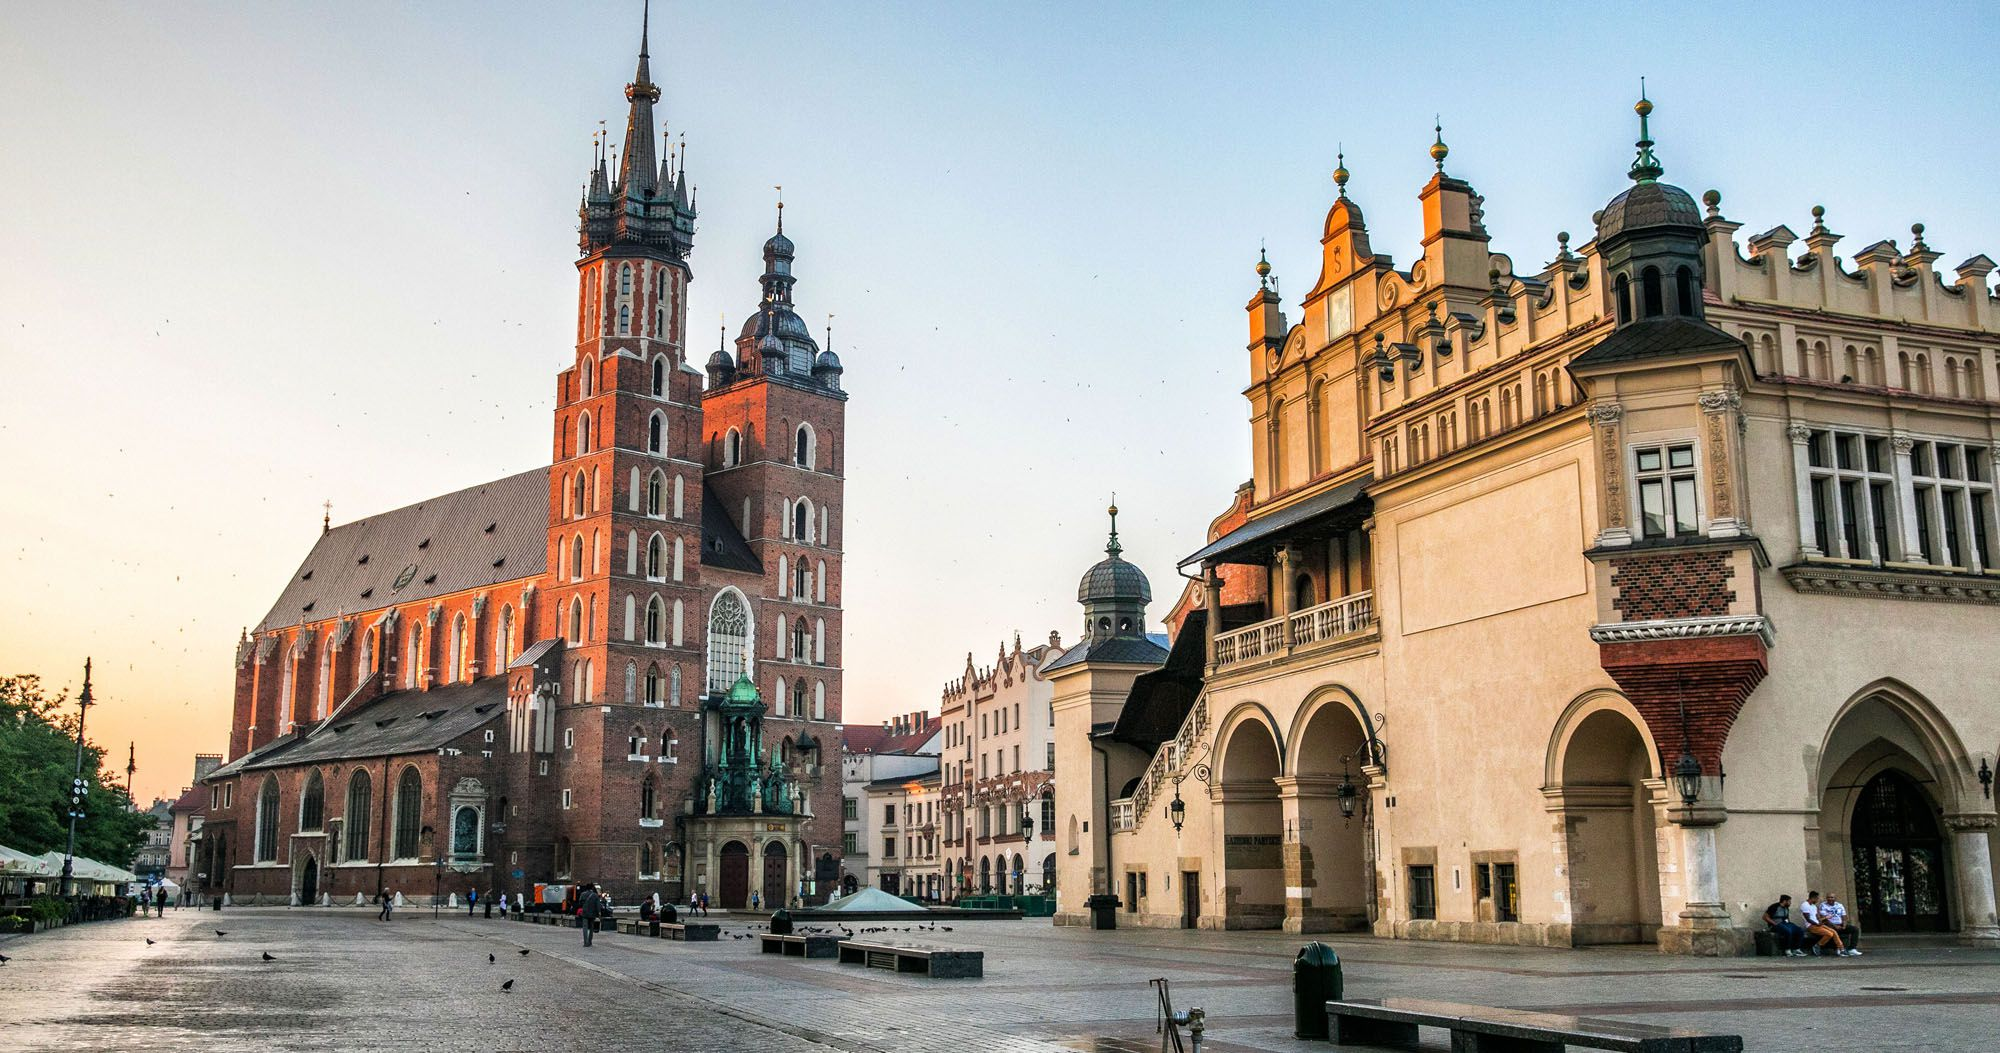 Krakow It's an Amazing Hub For Interior Designers And We Will Show You The Top 25